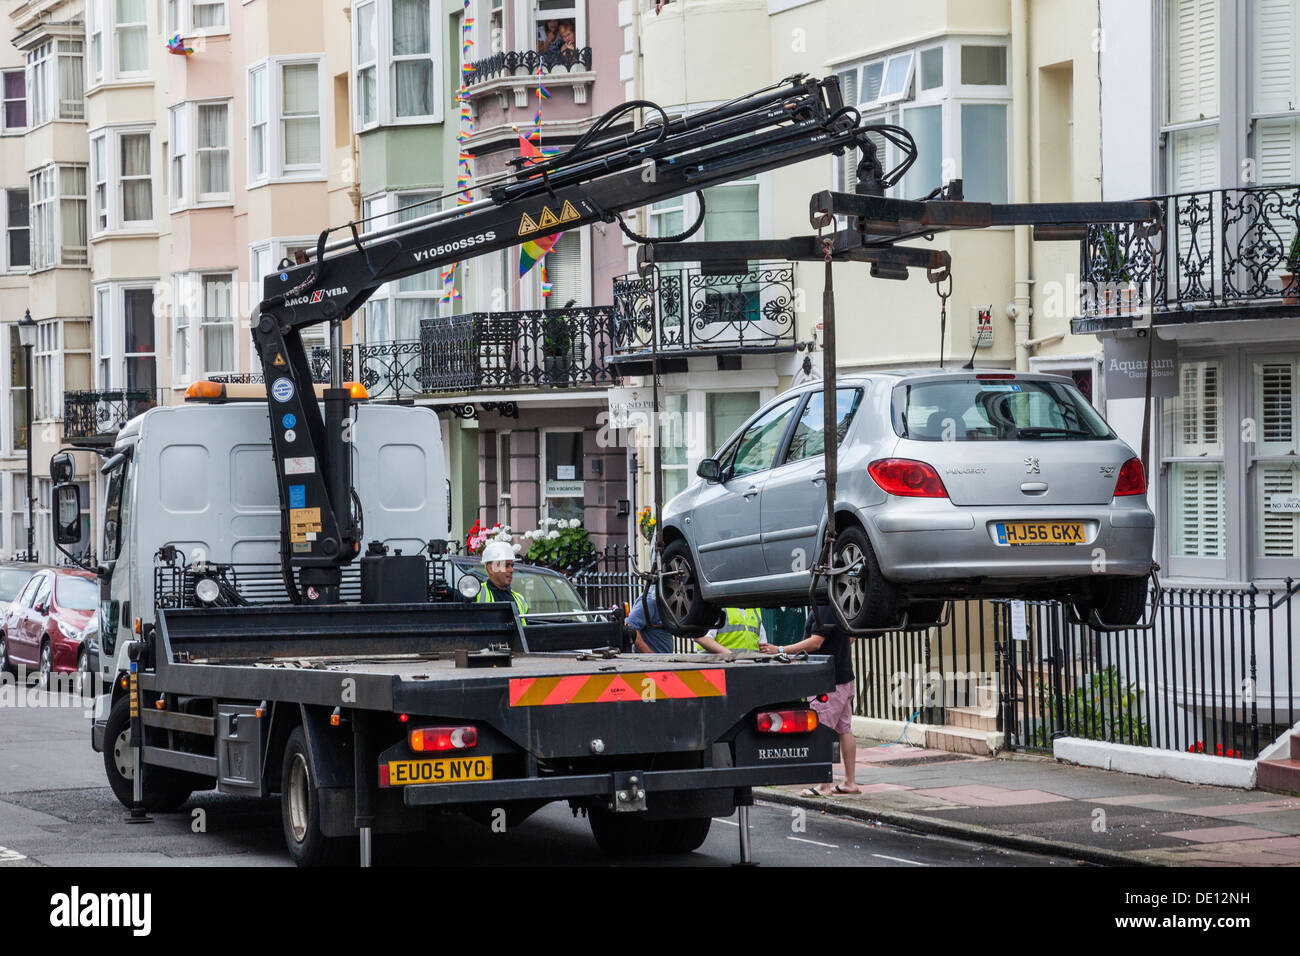 England, East Sussex, Brighton, Illegally Parked Cars being Removed from Street - Stock Image